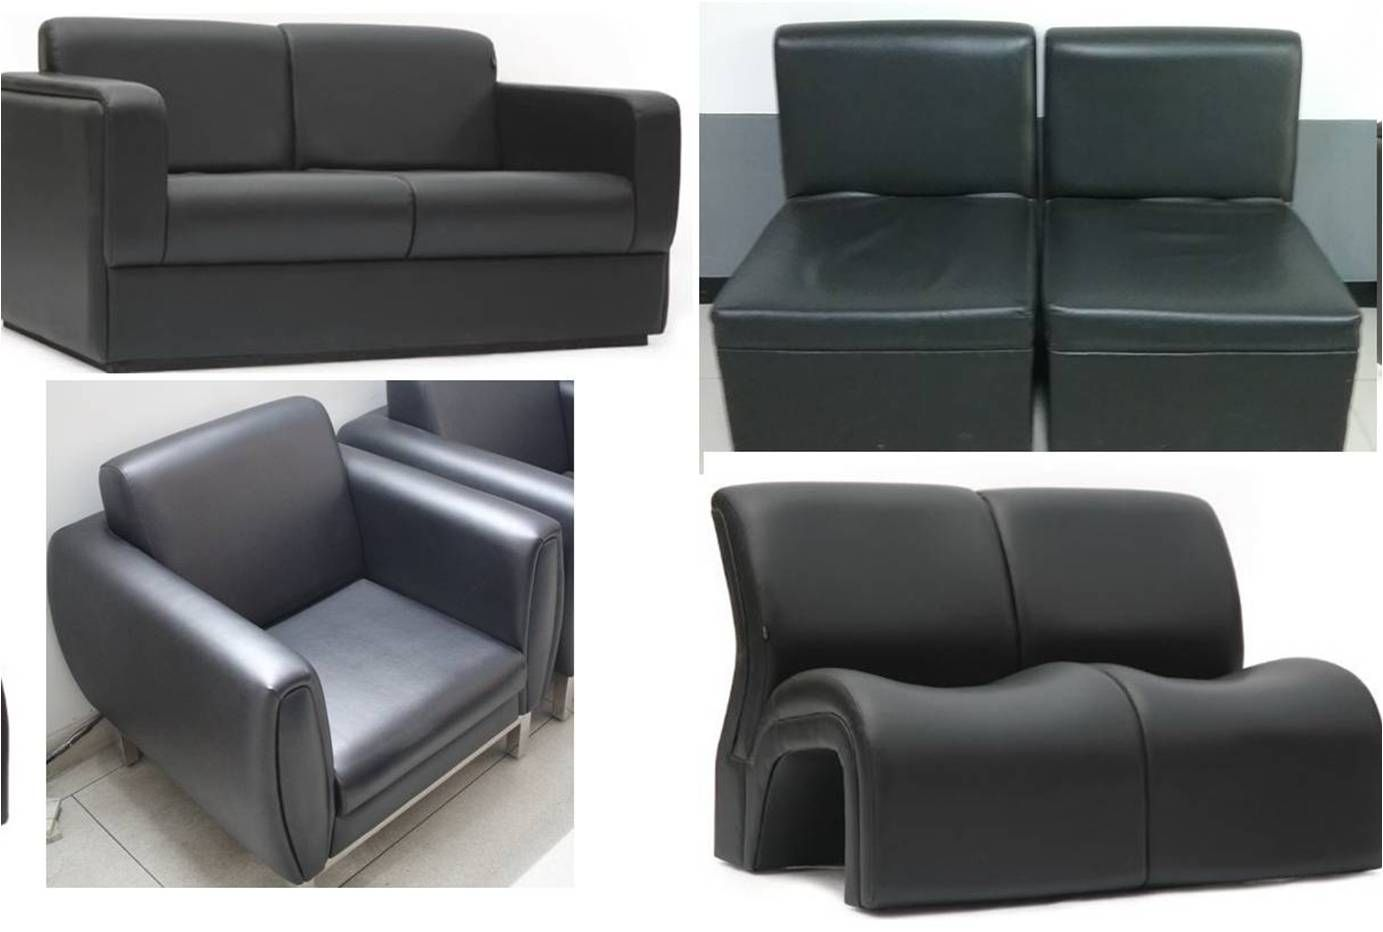 Sofa Set Price In Jagdalpur Office Sofa Manufacturer And Vendor Otobi Hatil